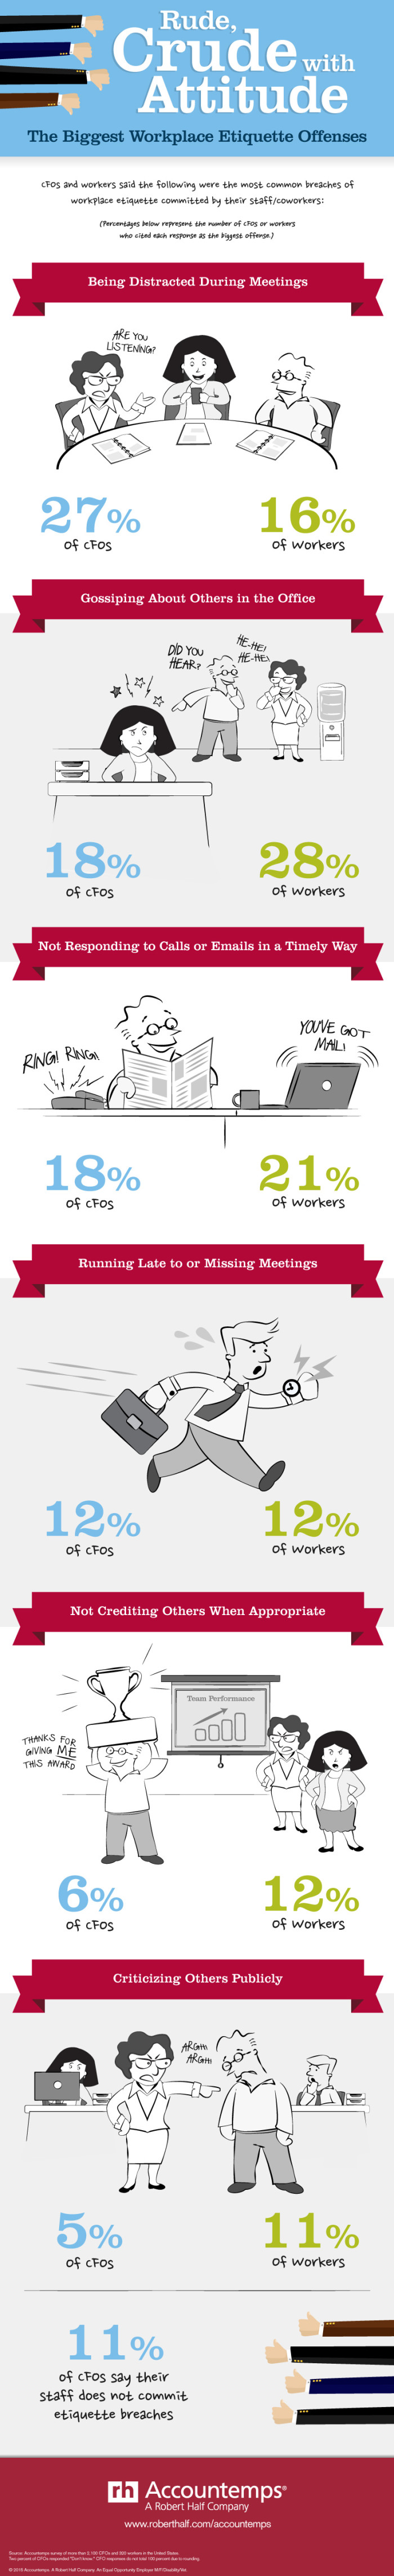 workplace etiquette infographic